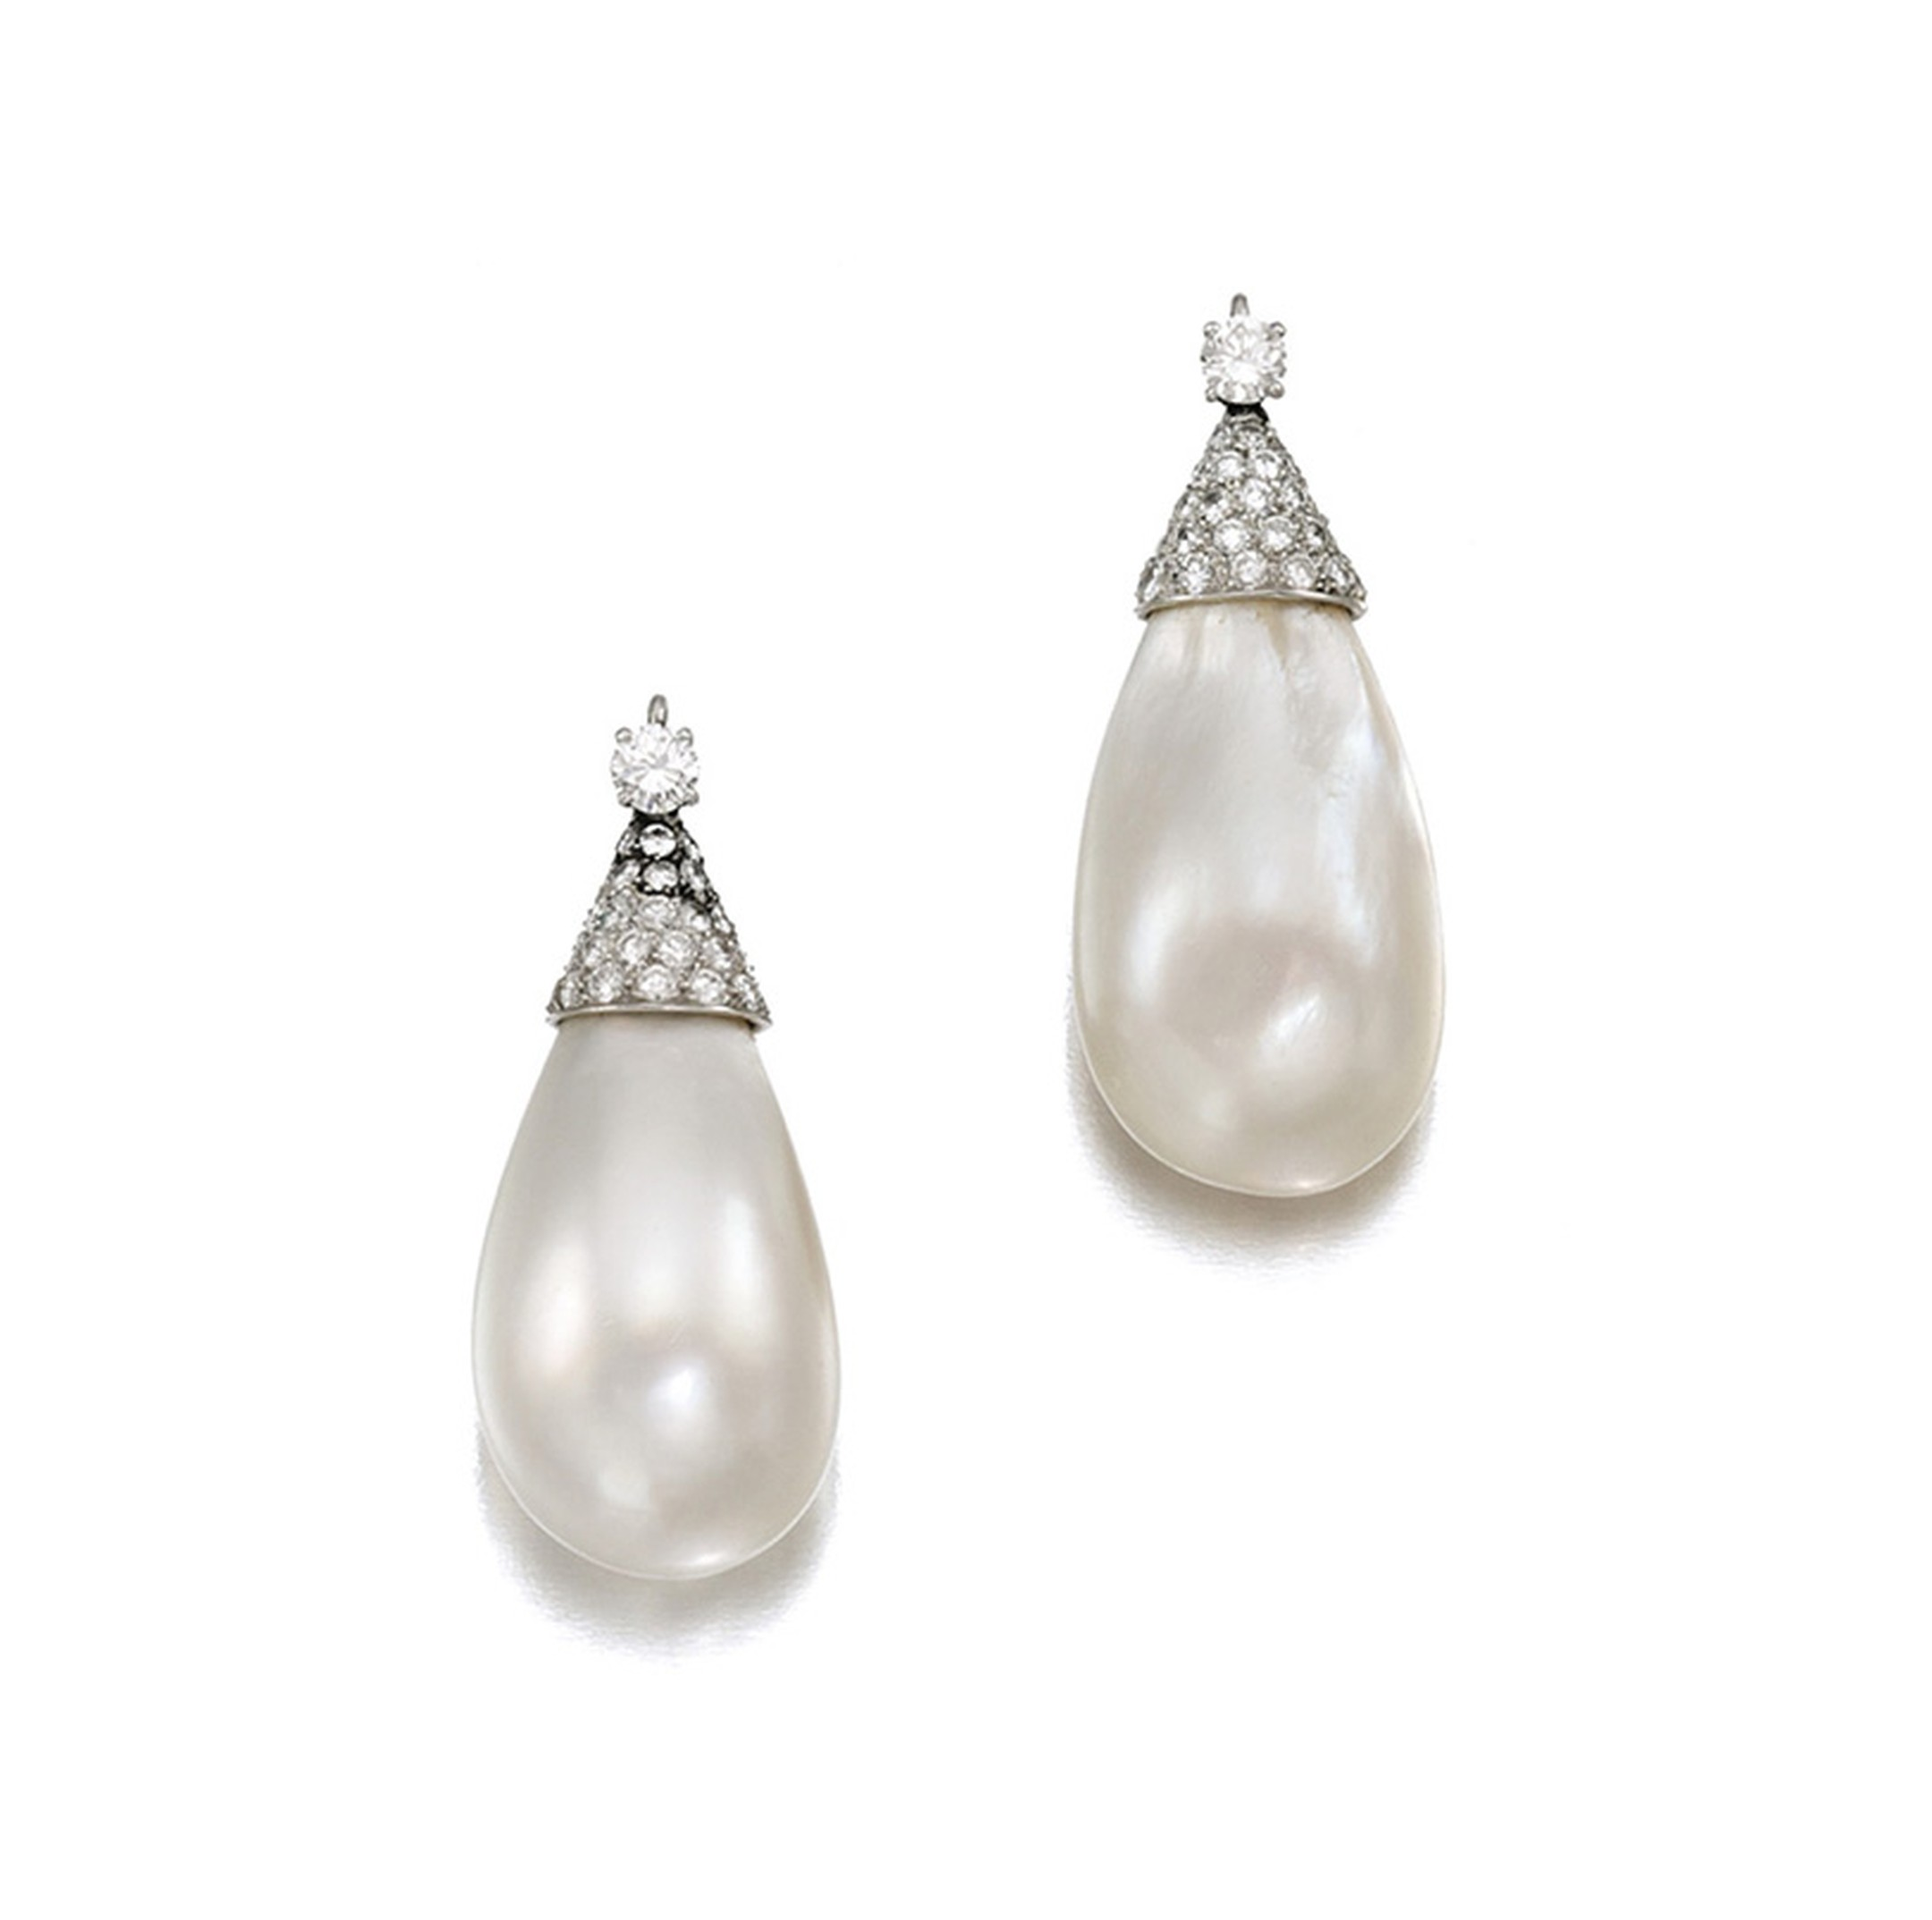 The pair of extremely rare natural baroque pearl pendants with diamonds belonging to Gina Lollobrigida that sold for £1.6 million at Sotheby's London in April 2013.